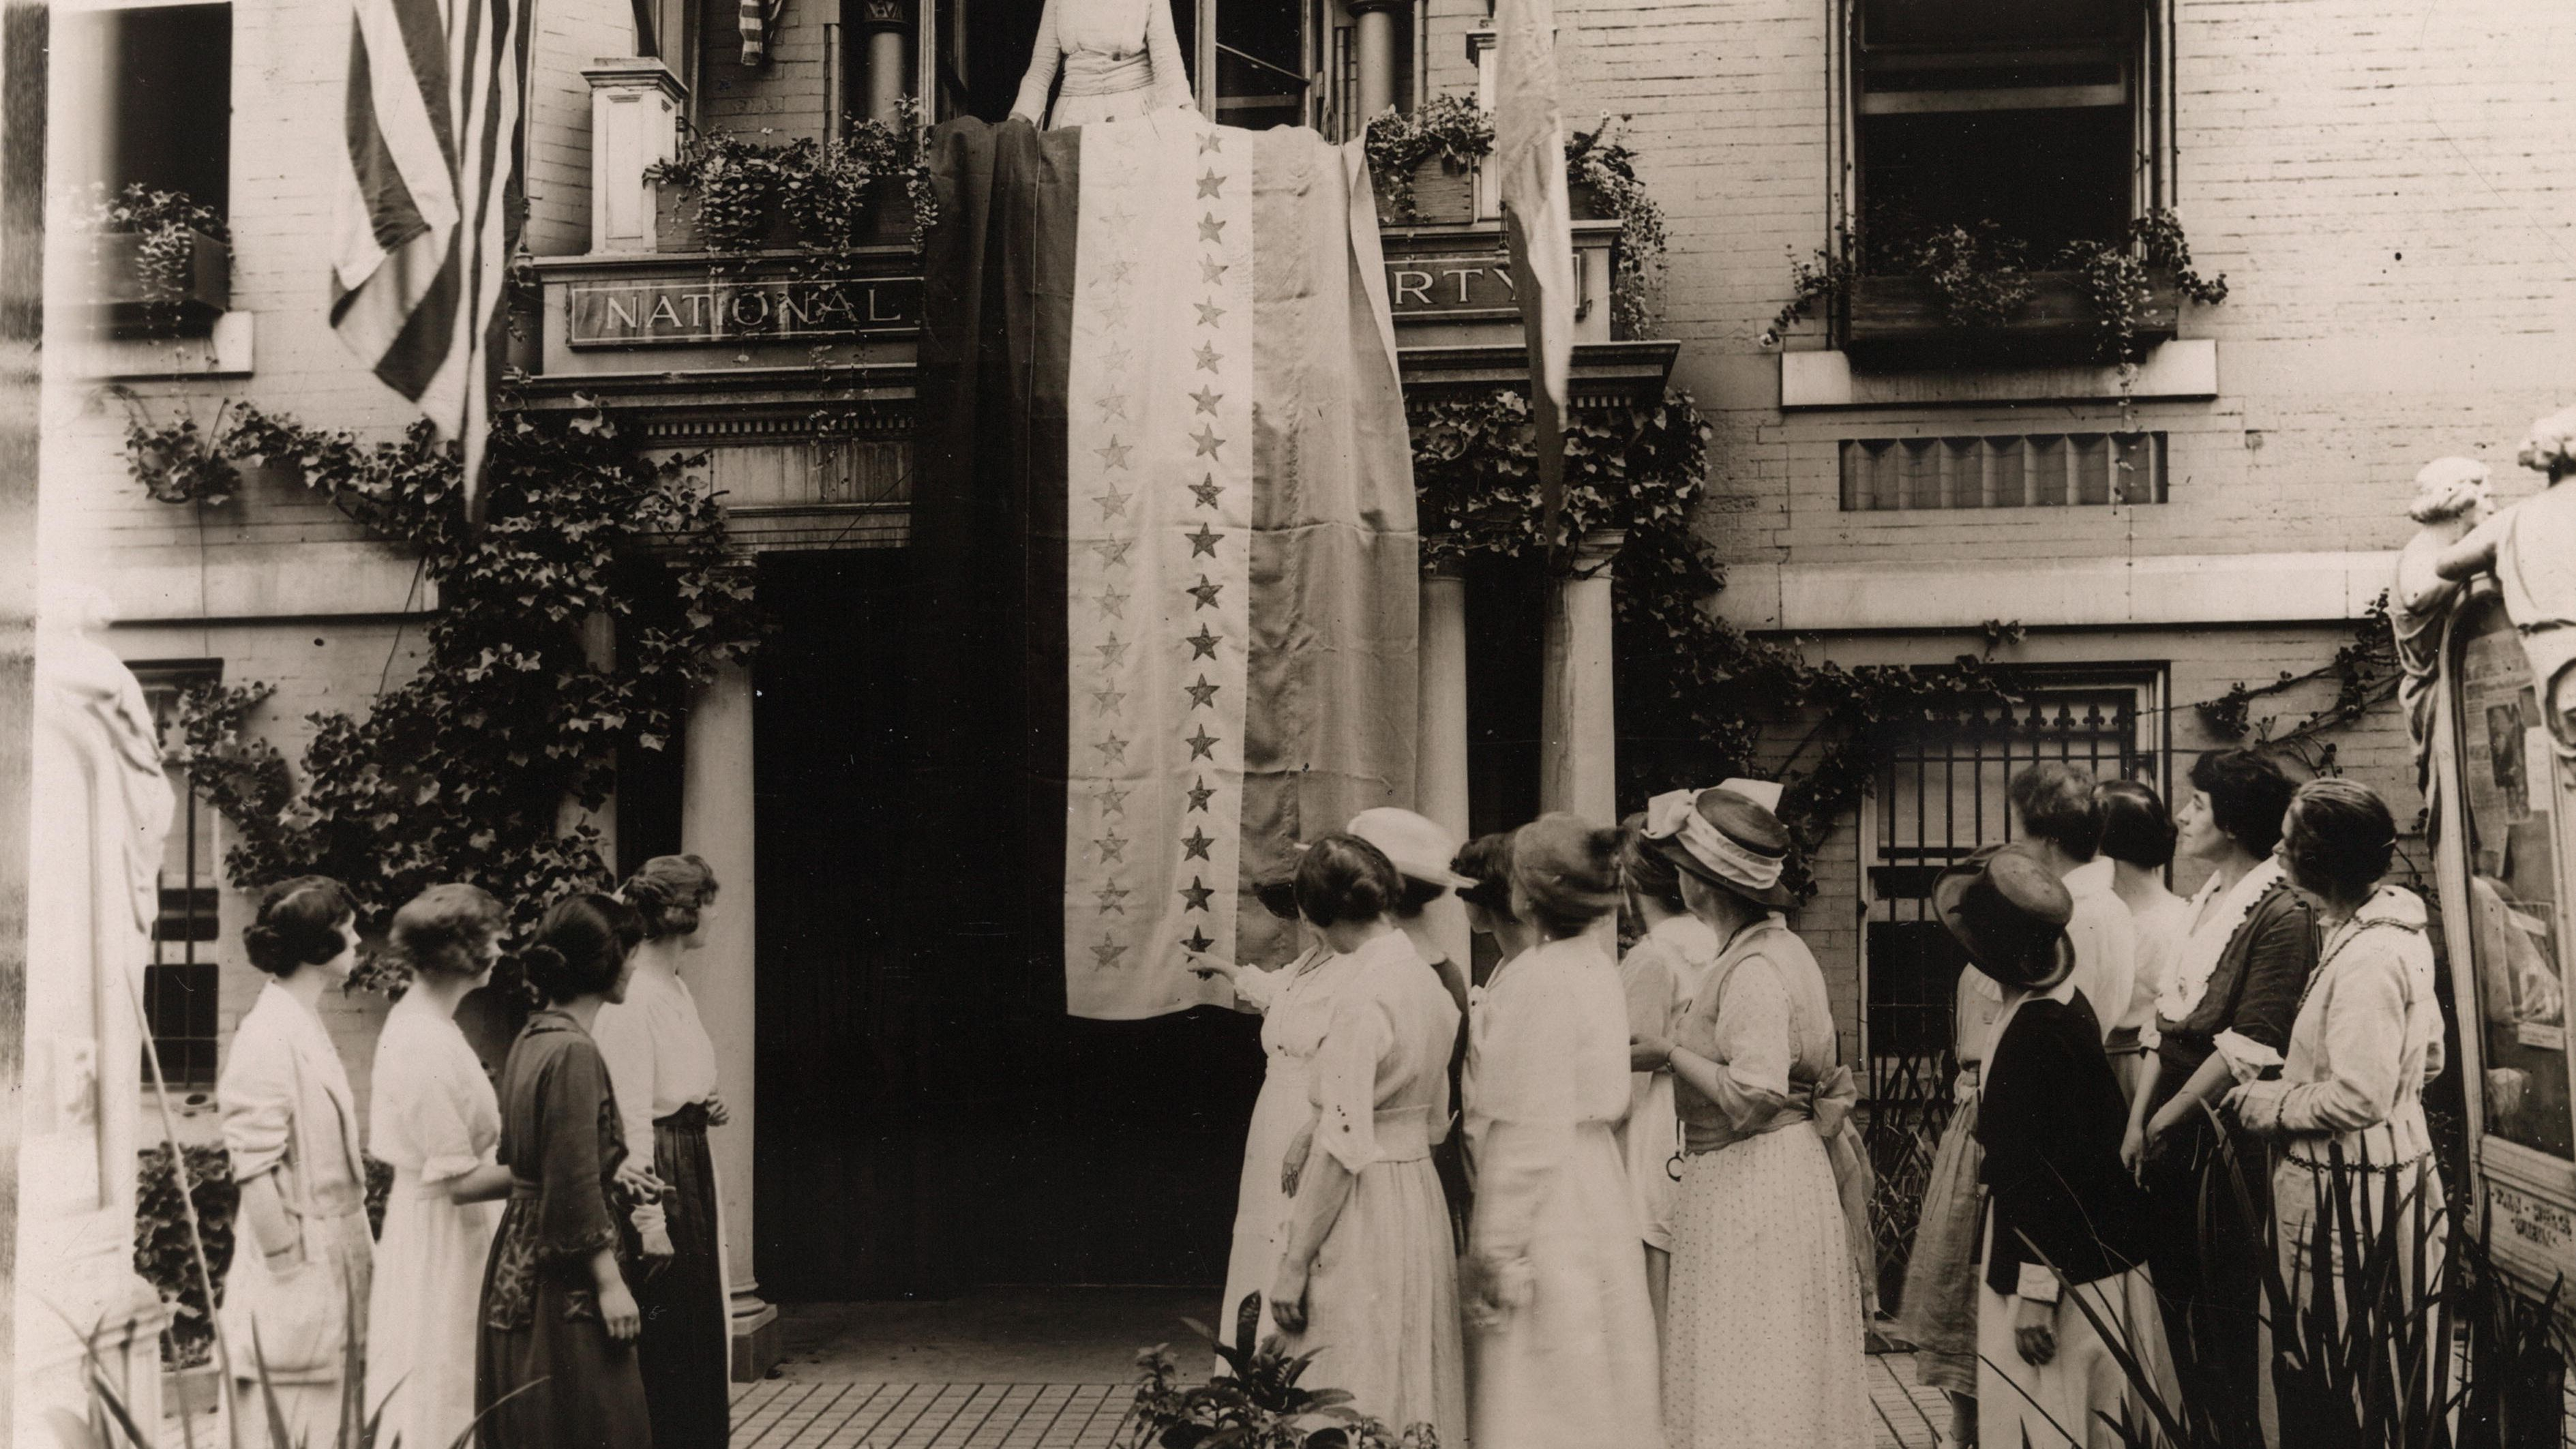 Washington D.C. 1918 Photo WOMAN SUFFRAGE SUFFRAGETTES WITH BANNERS Location